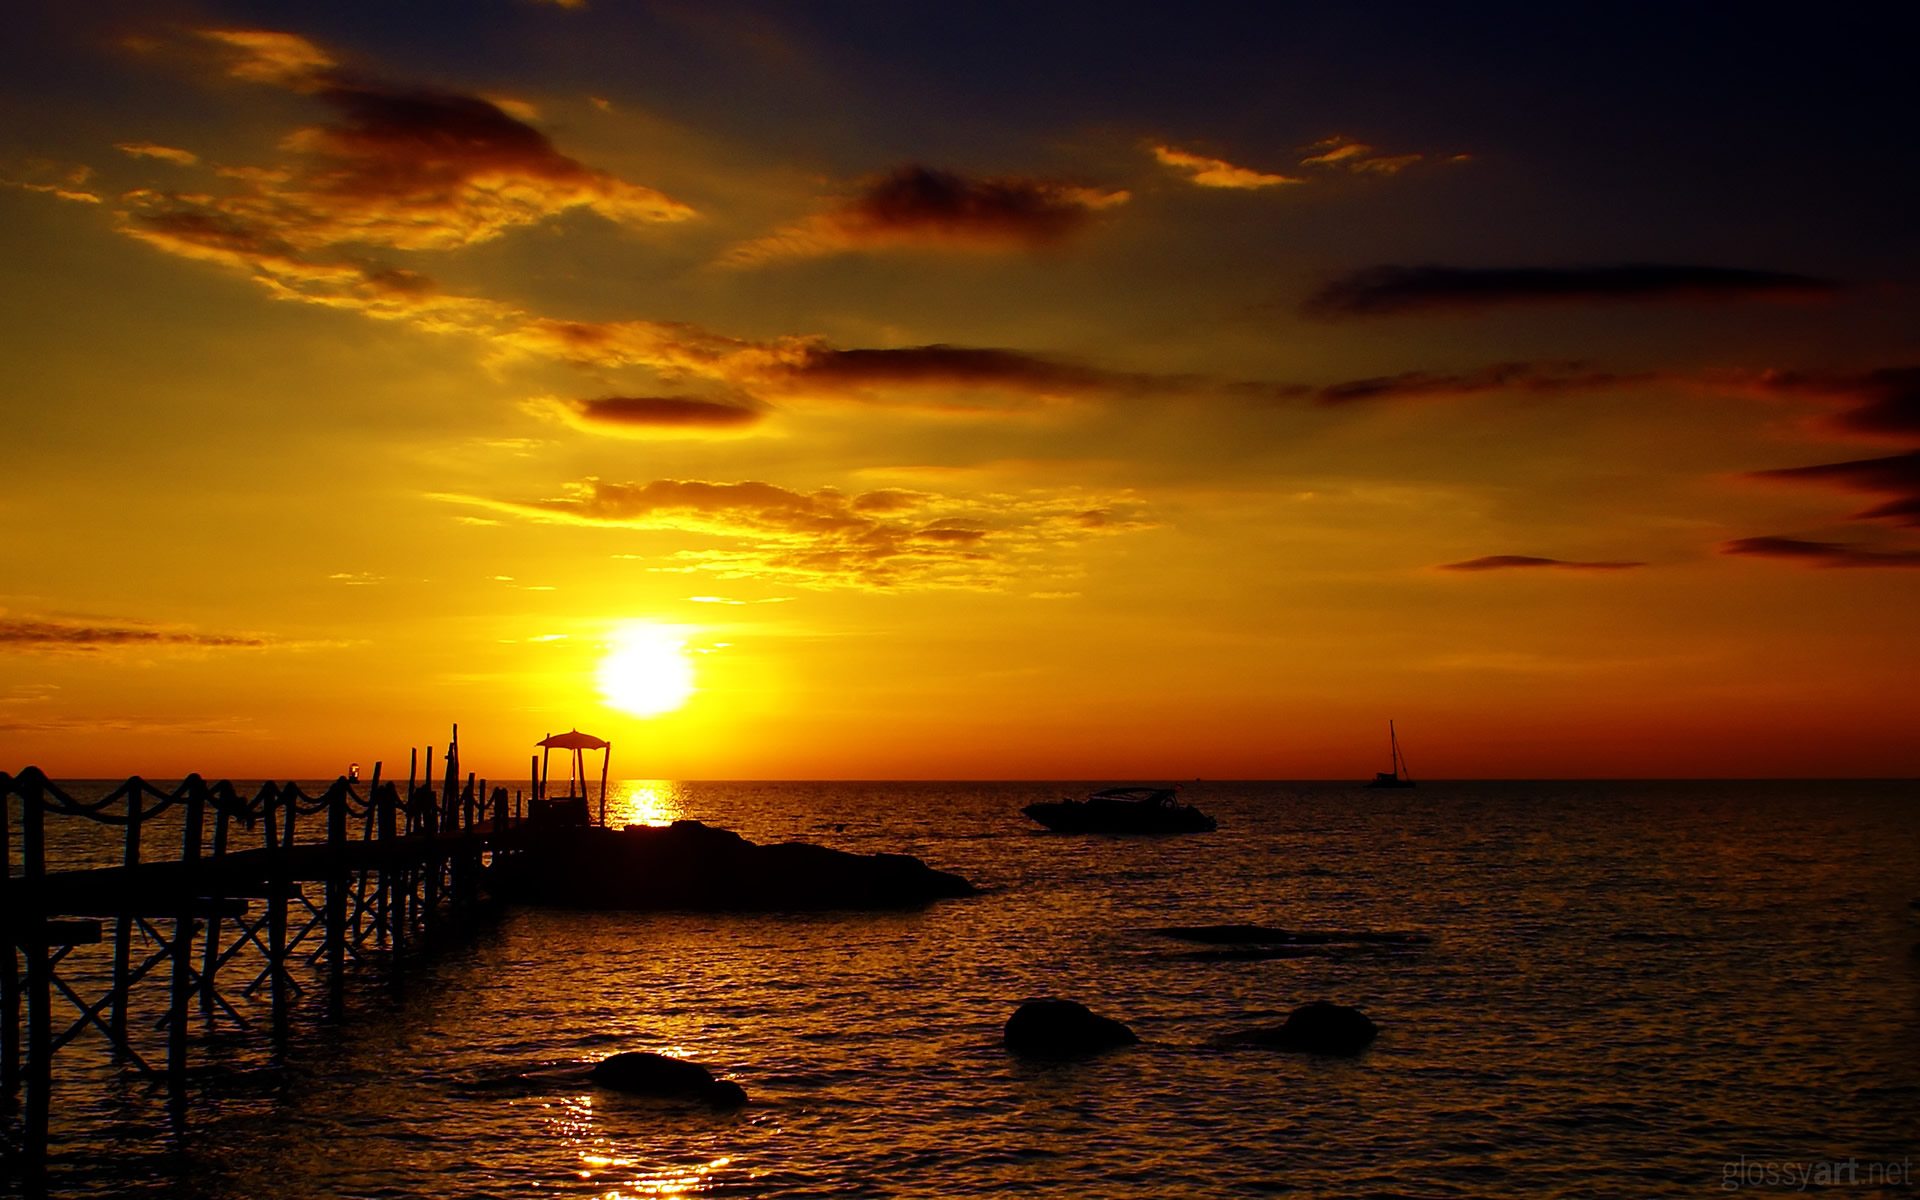 Golden Sunset HD Wallpaper | Theme Bin - Customization, HD Wallpapers ...